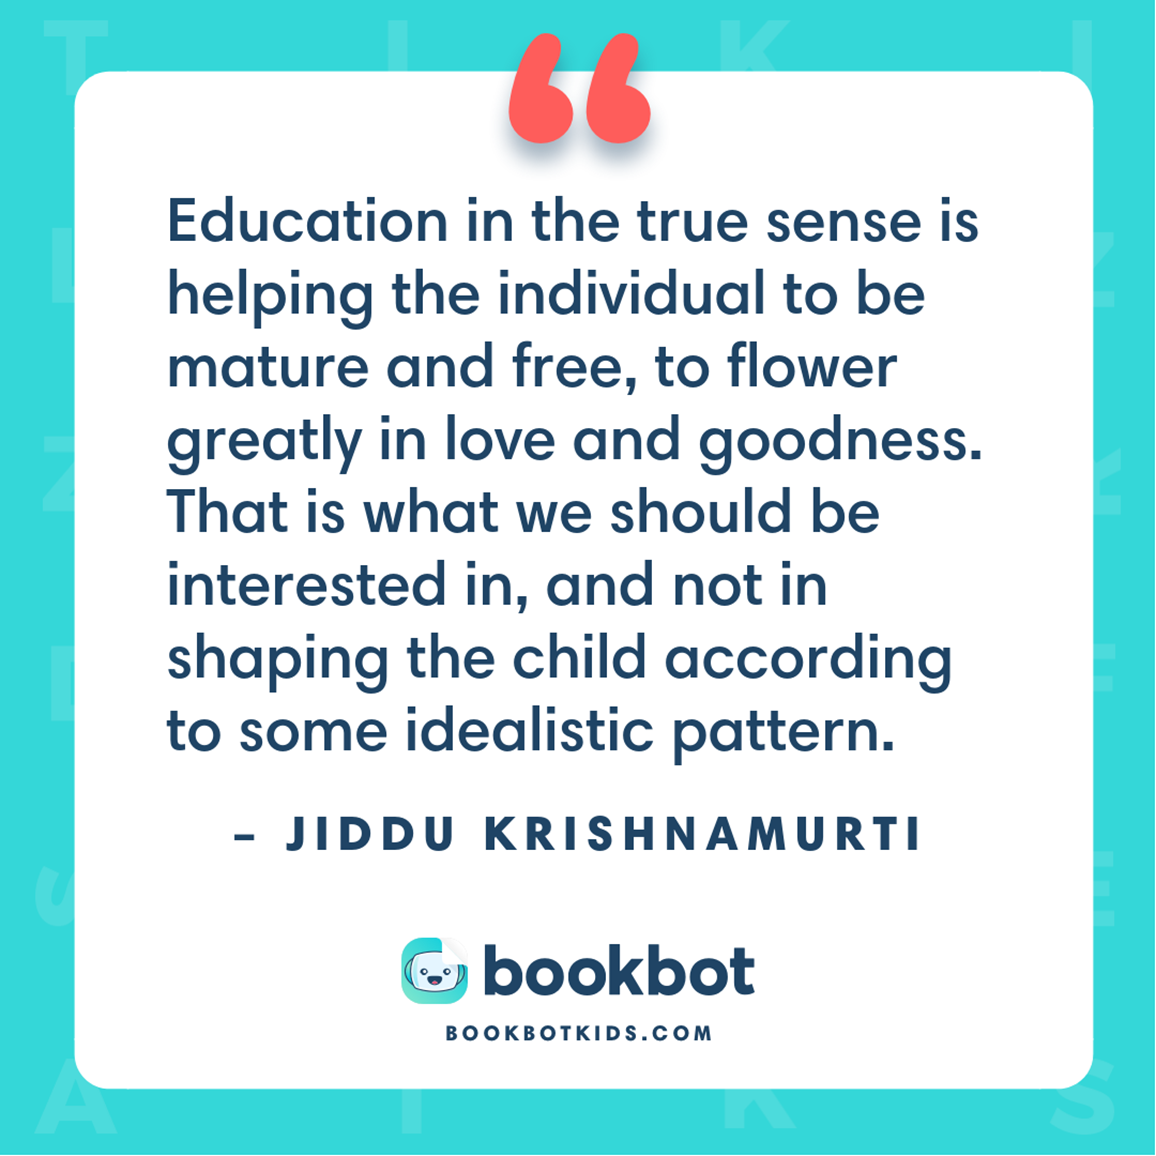 Education in the true sense is helping the individual to be mature and free, to flower greatly in love and goodness. That is what we should be interested in, and not in shaping the child according to some idealistic pattern. – Jiddu Krishnamurti